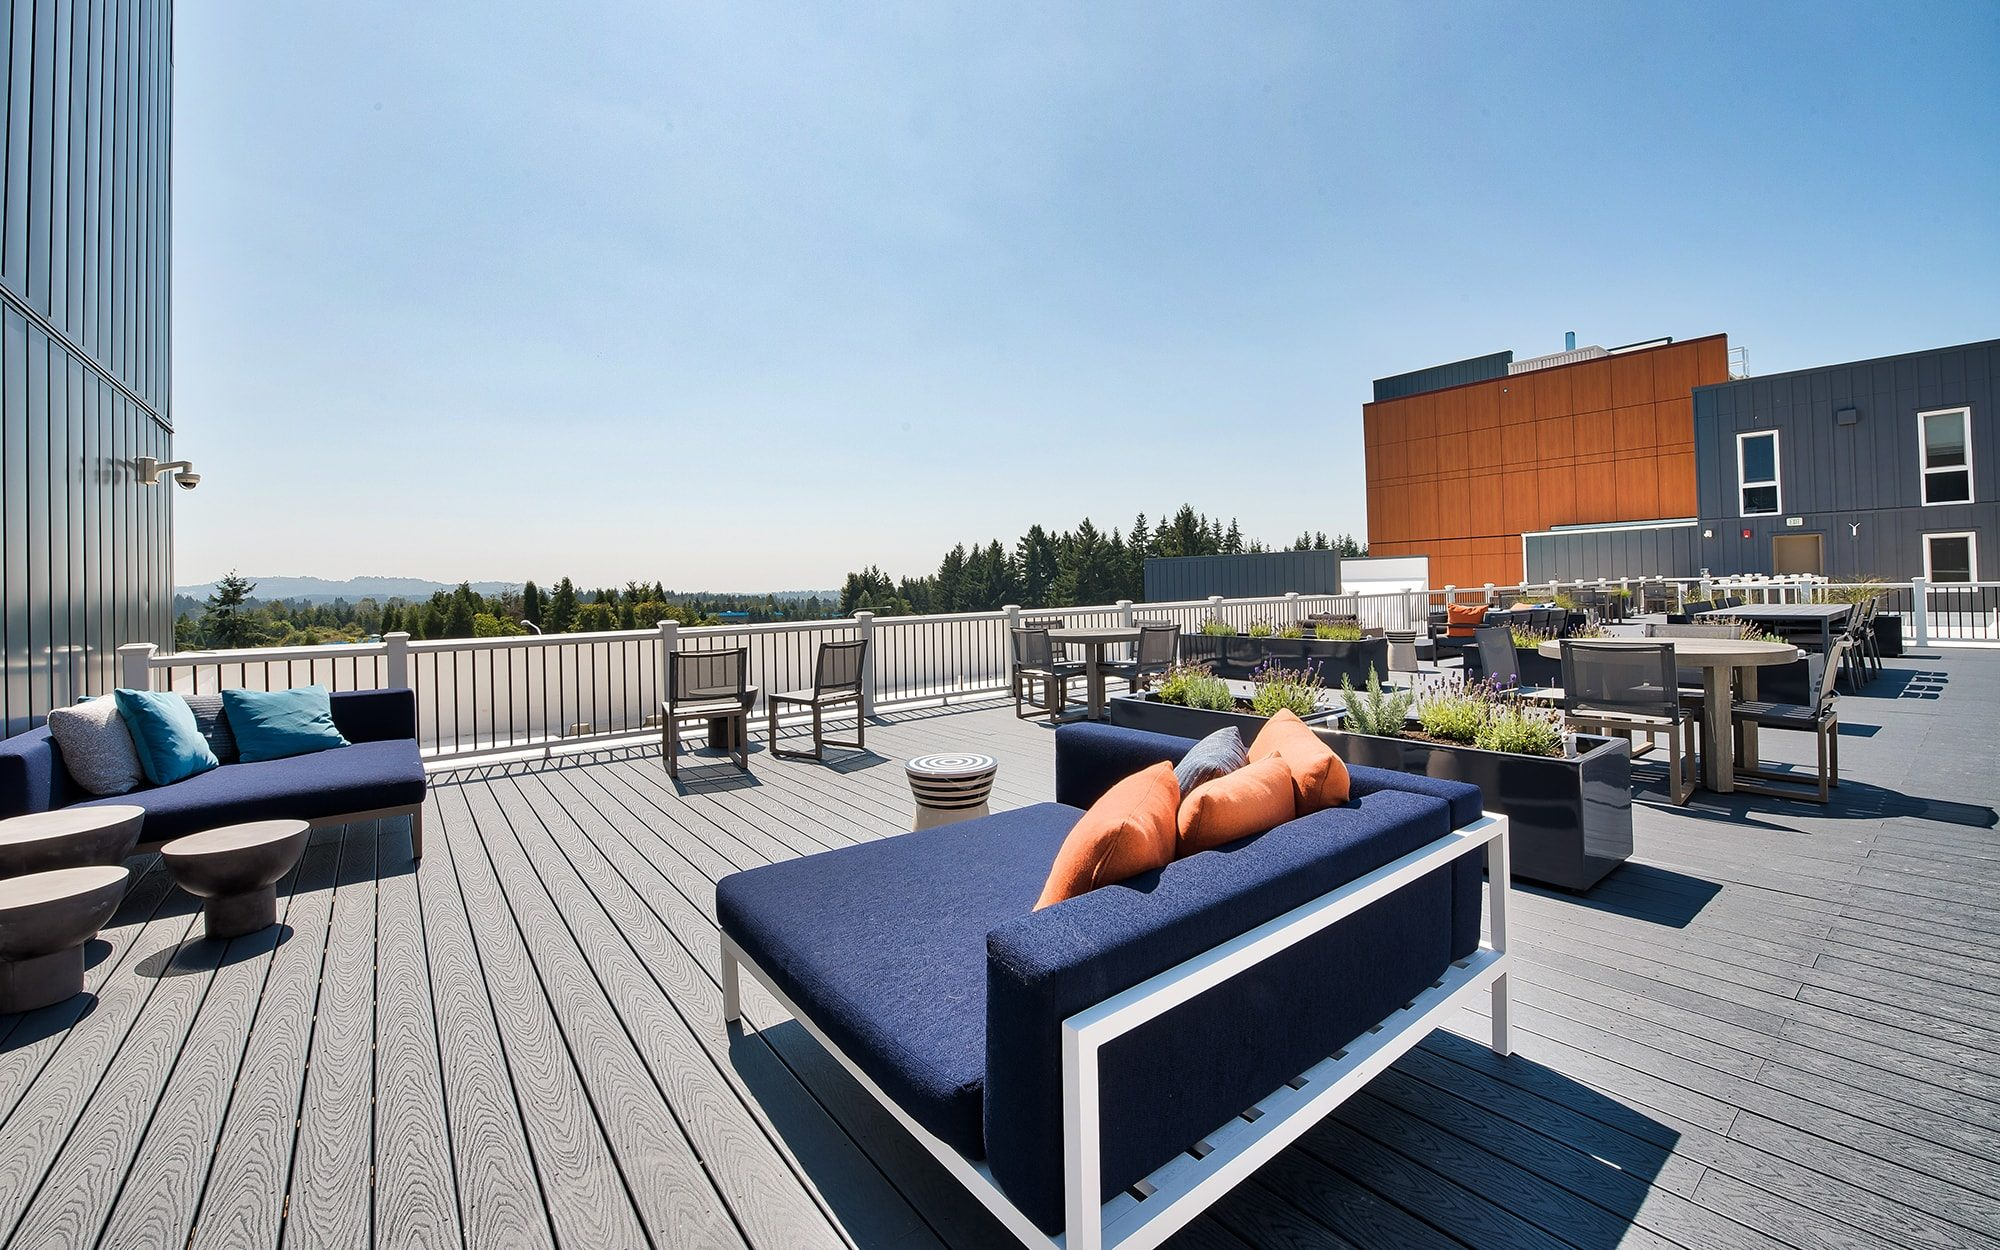 Rooftop amenity space with lounge seating and tables